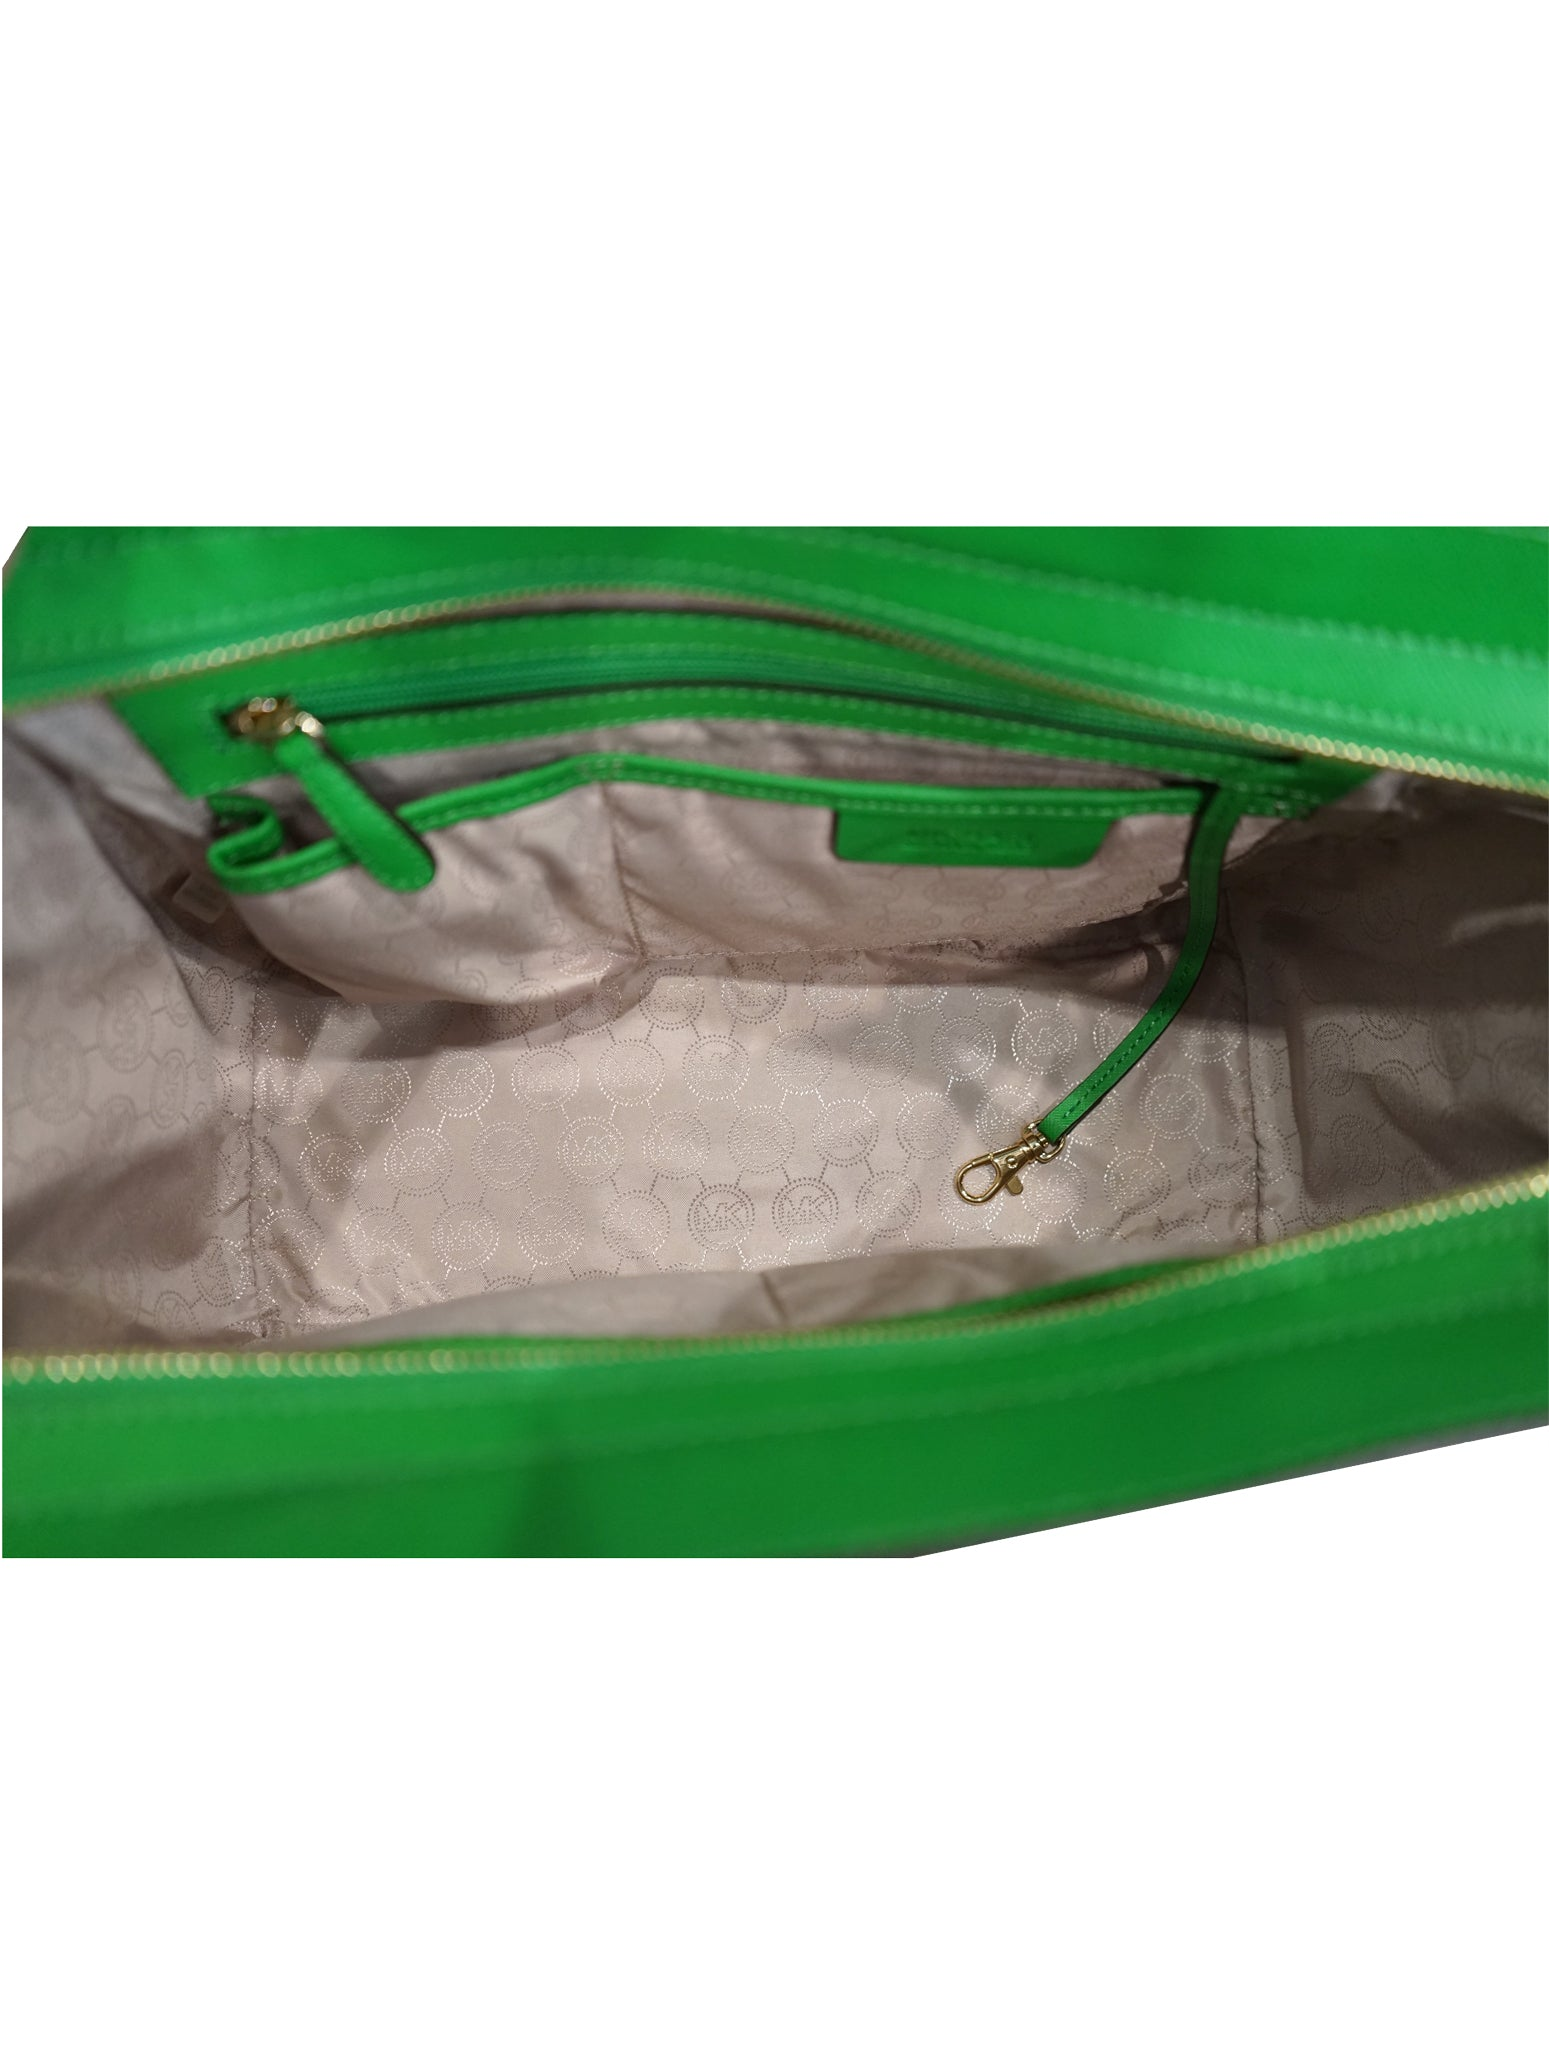 GREEN SAFFIANO LEATHER MEDIUM SELMA TOTE